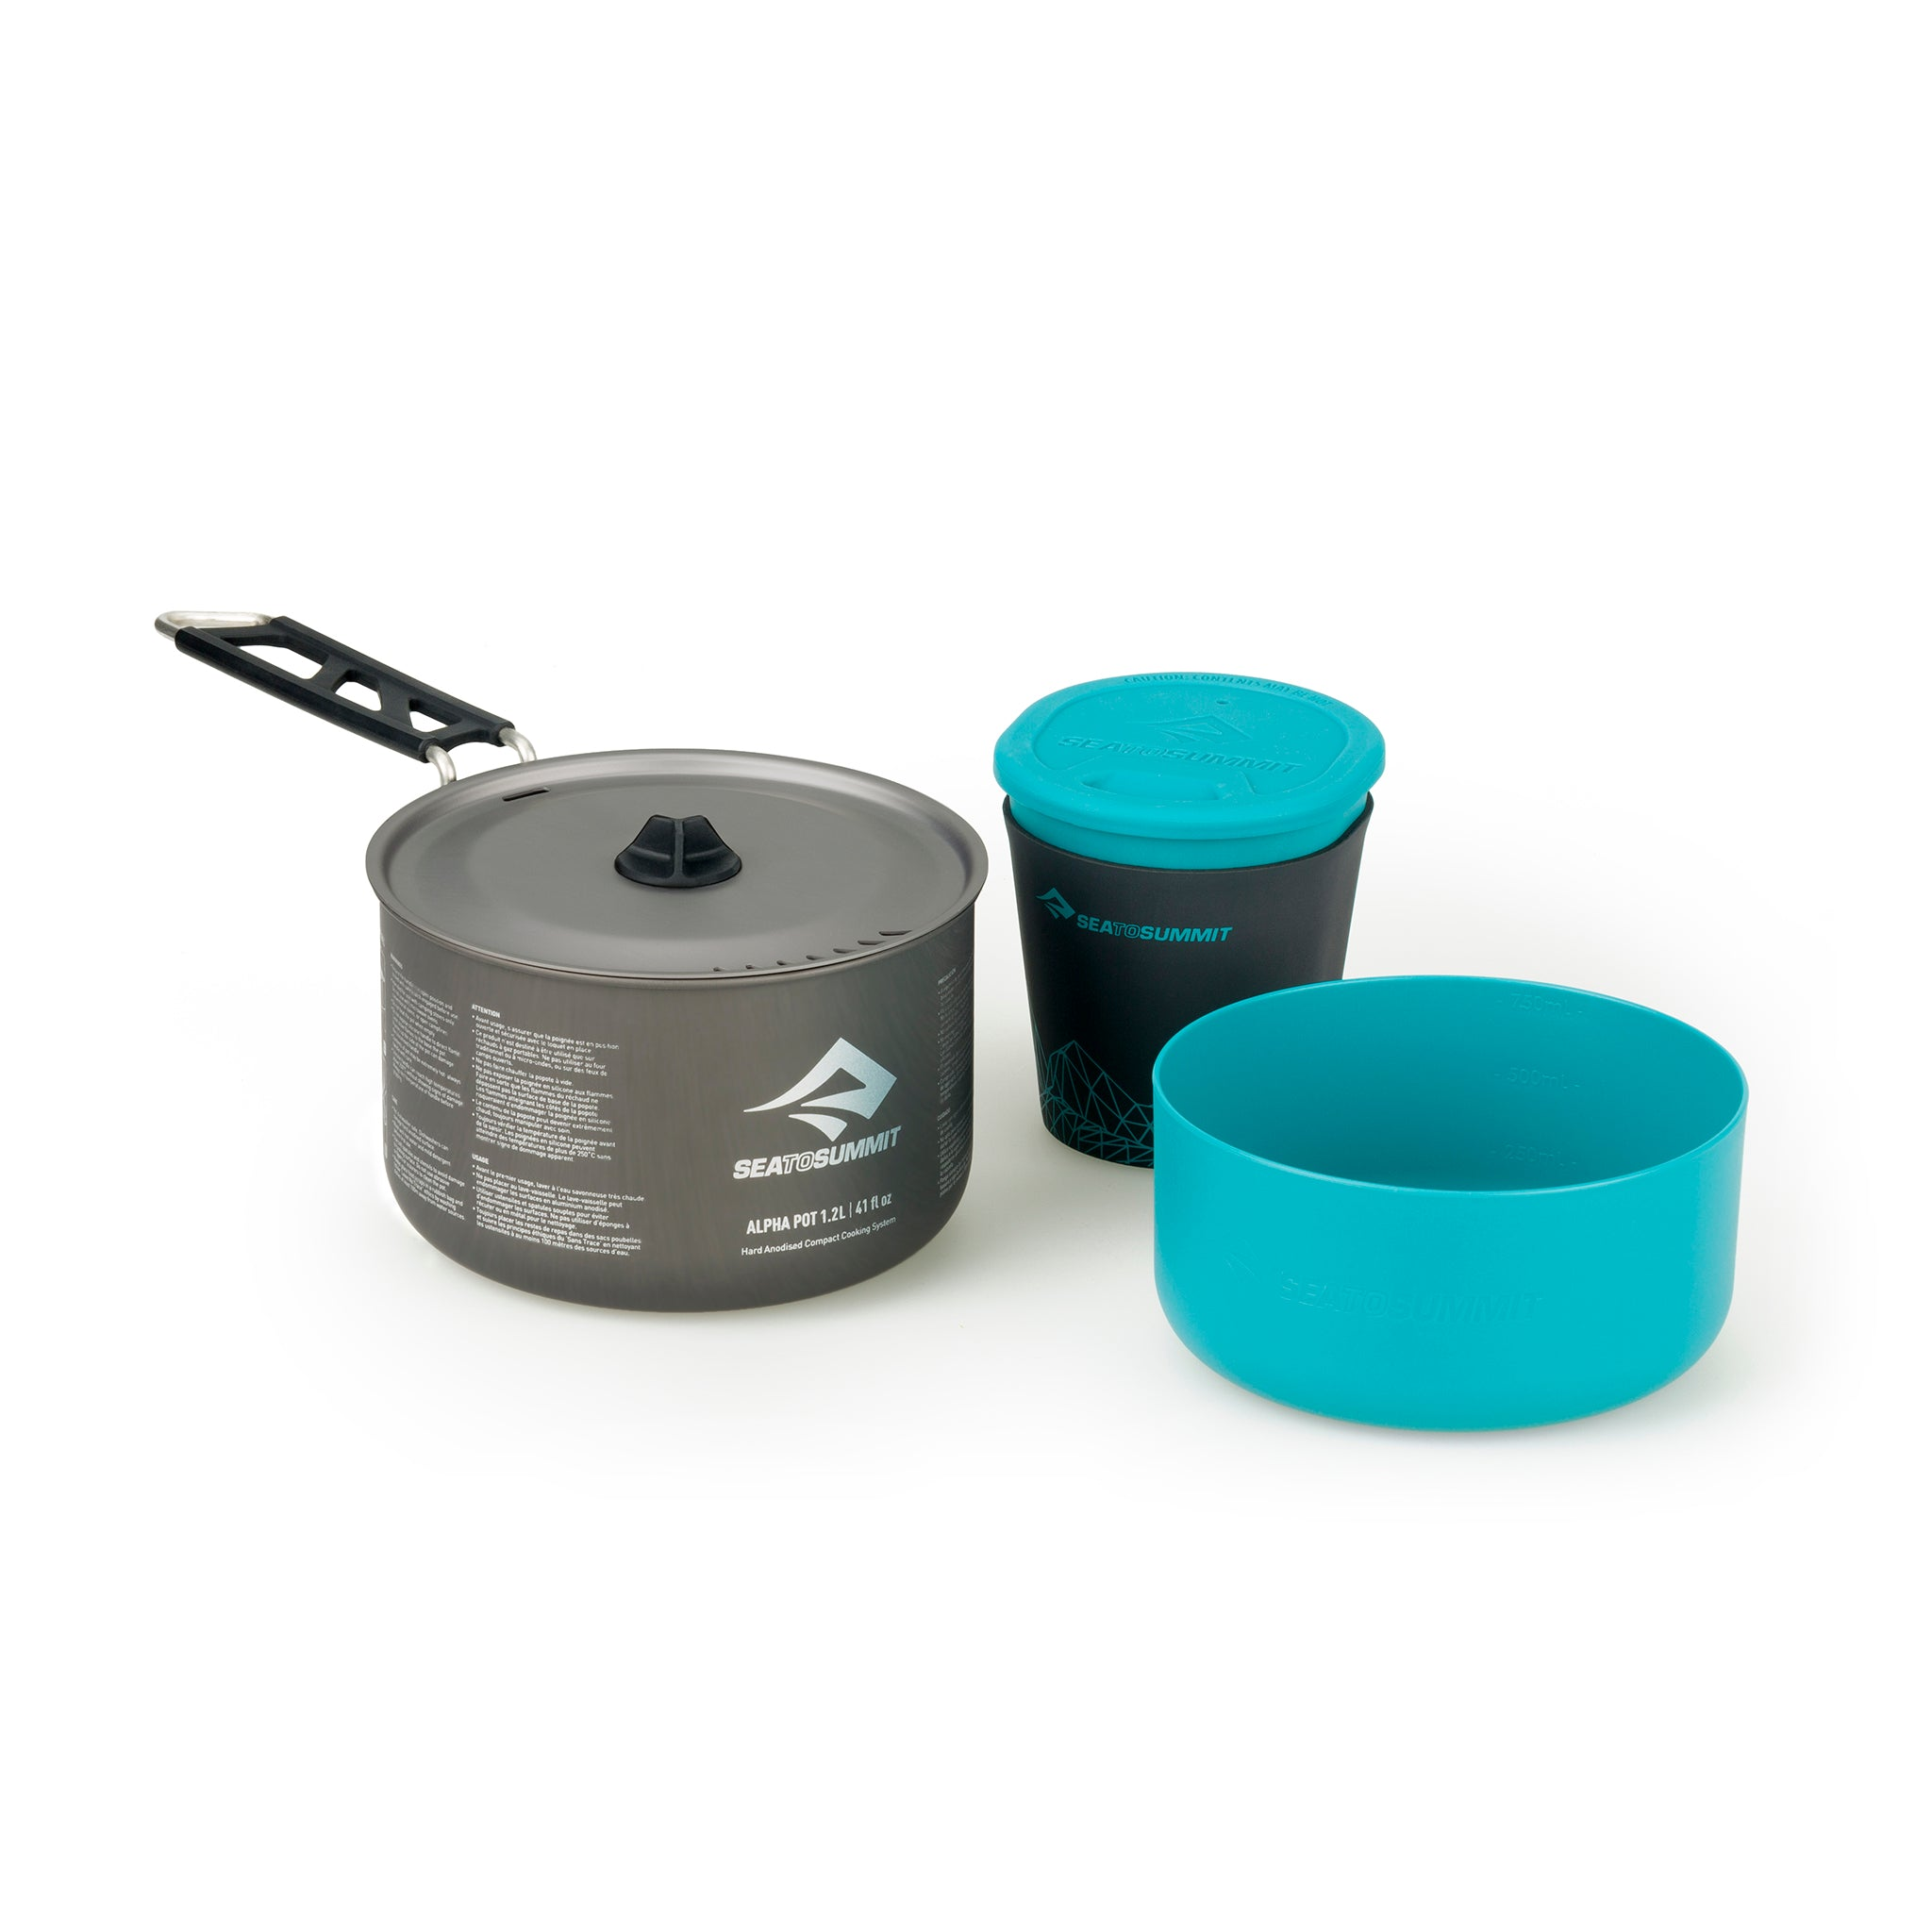 Alpha Camping Cook Set 1.1 - 1 Pot, 1 Bowl & 1 Mug – Sea to Summit